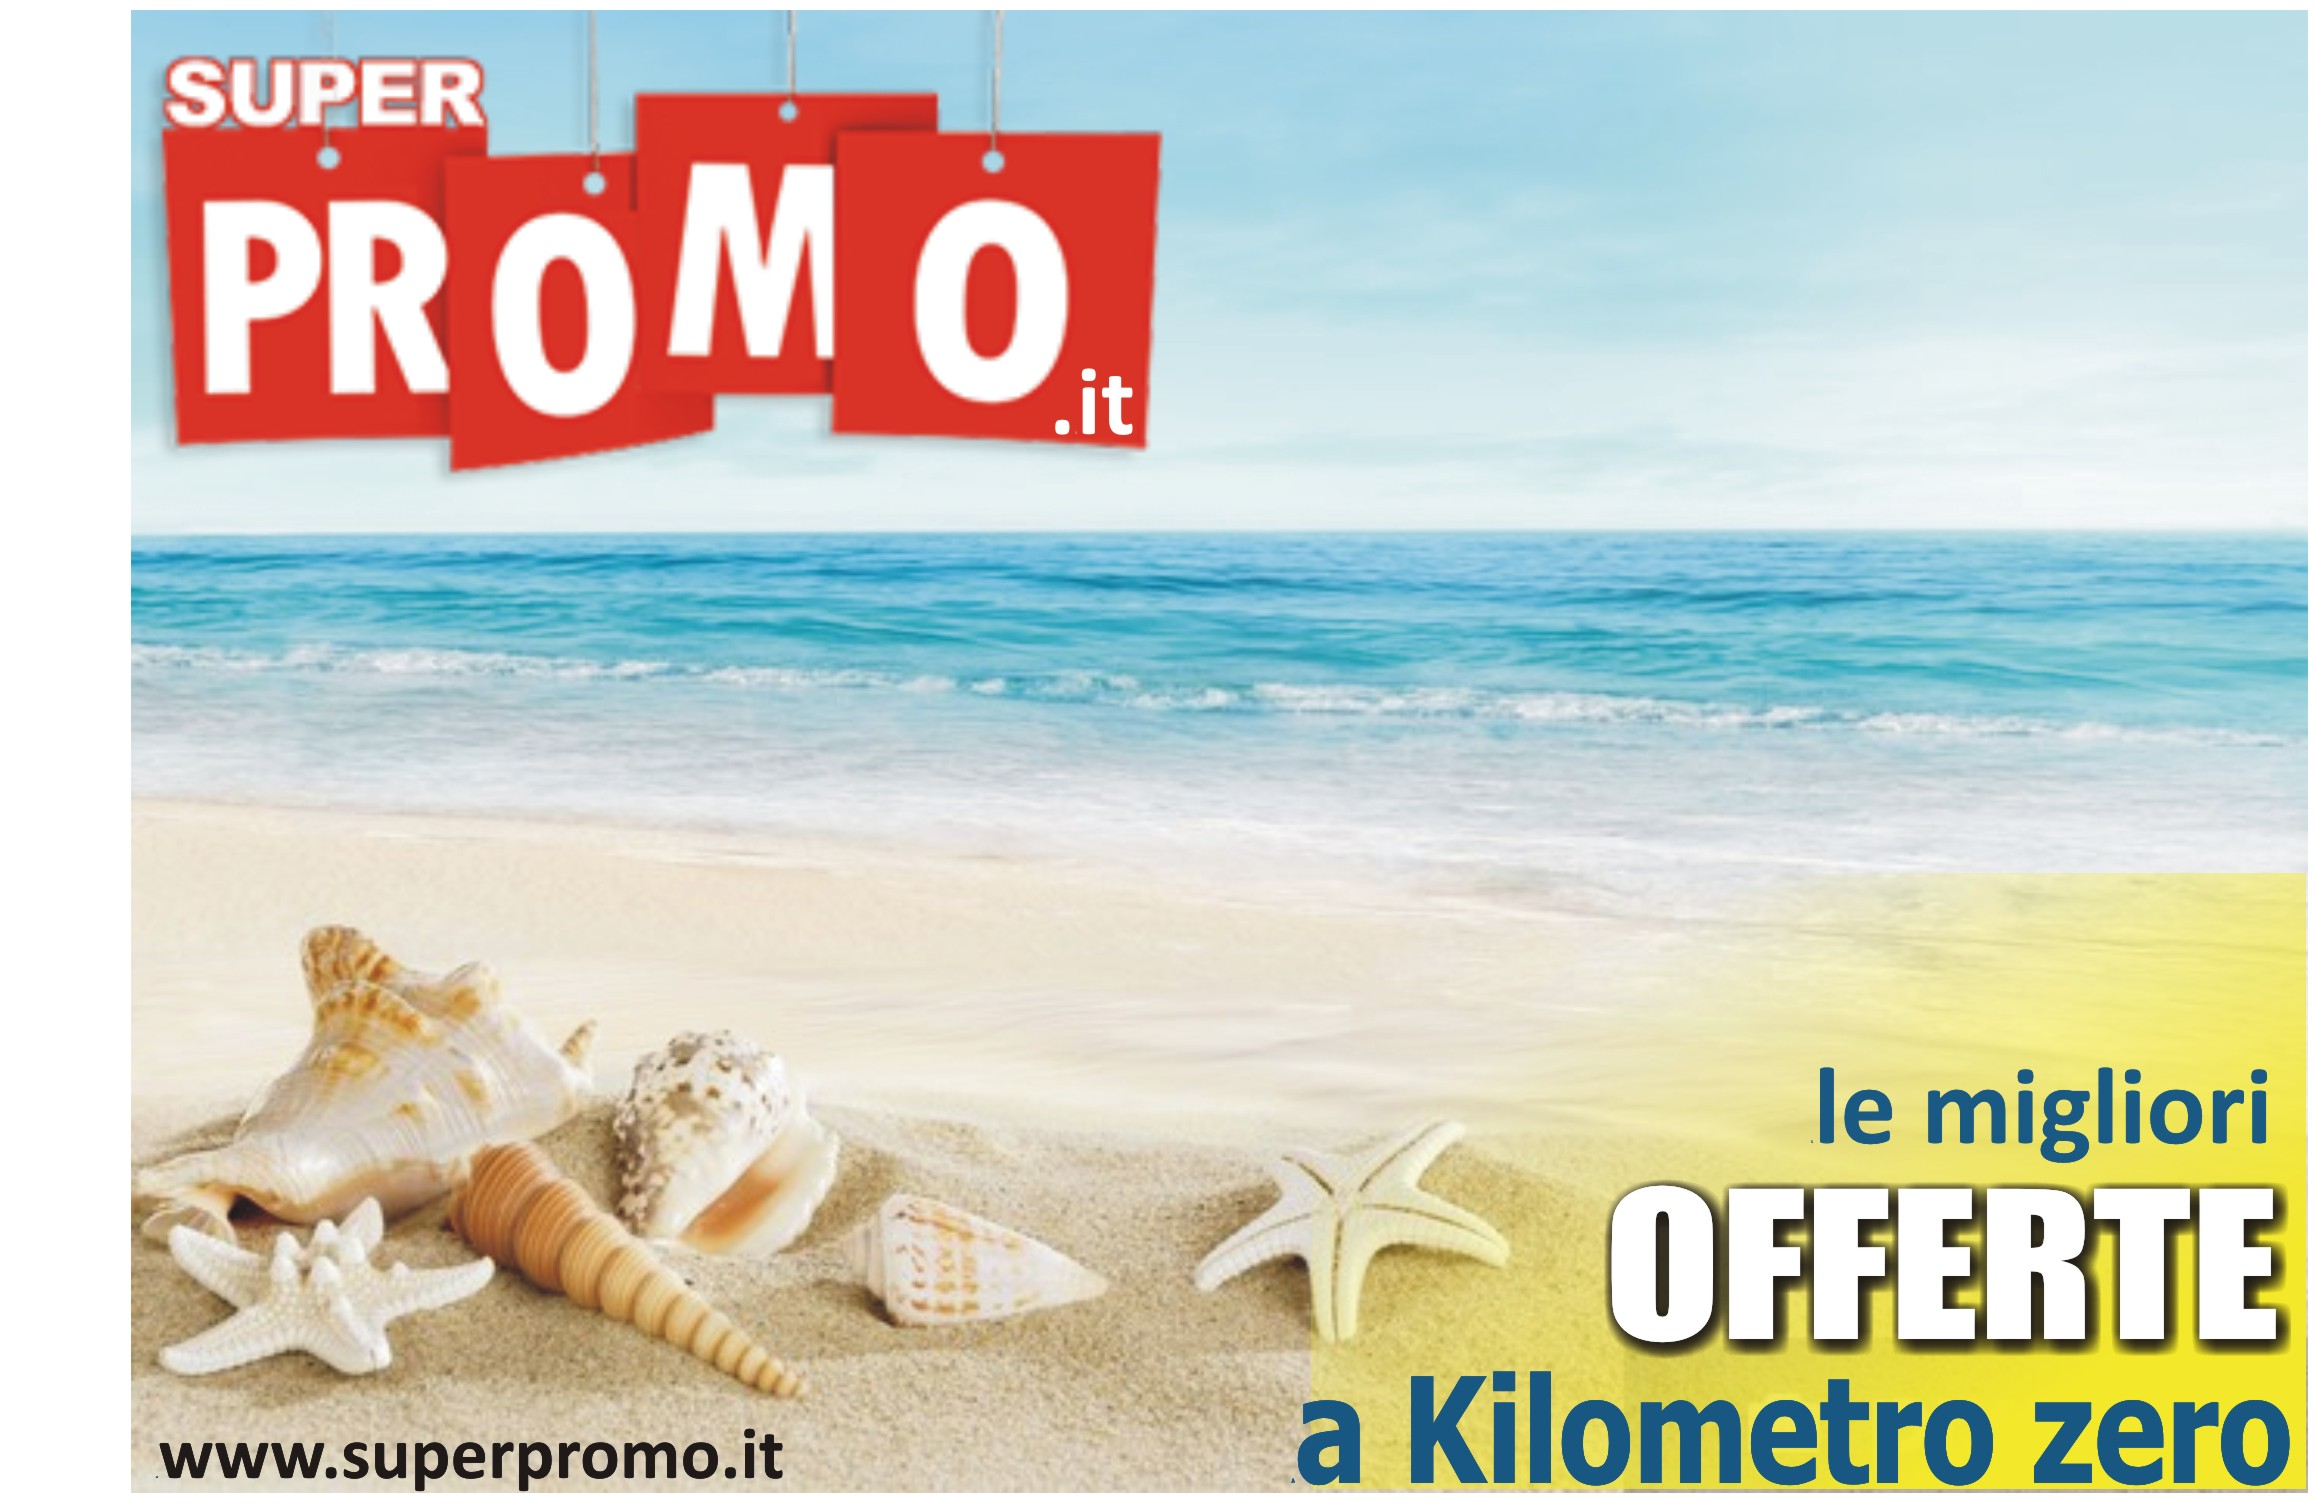 Superpromo.it